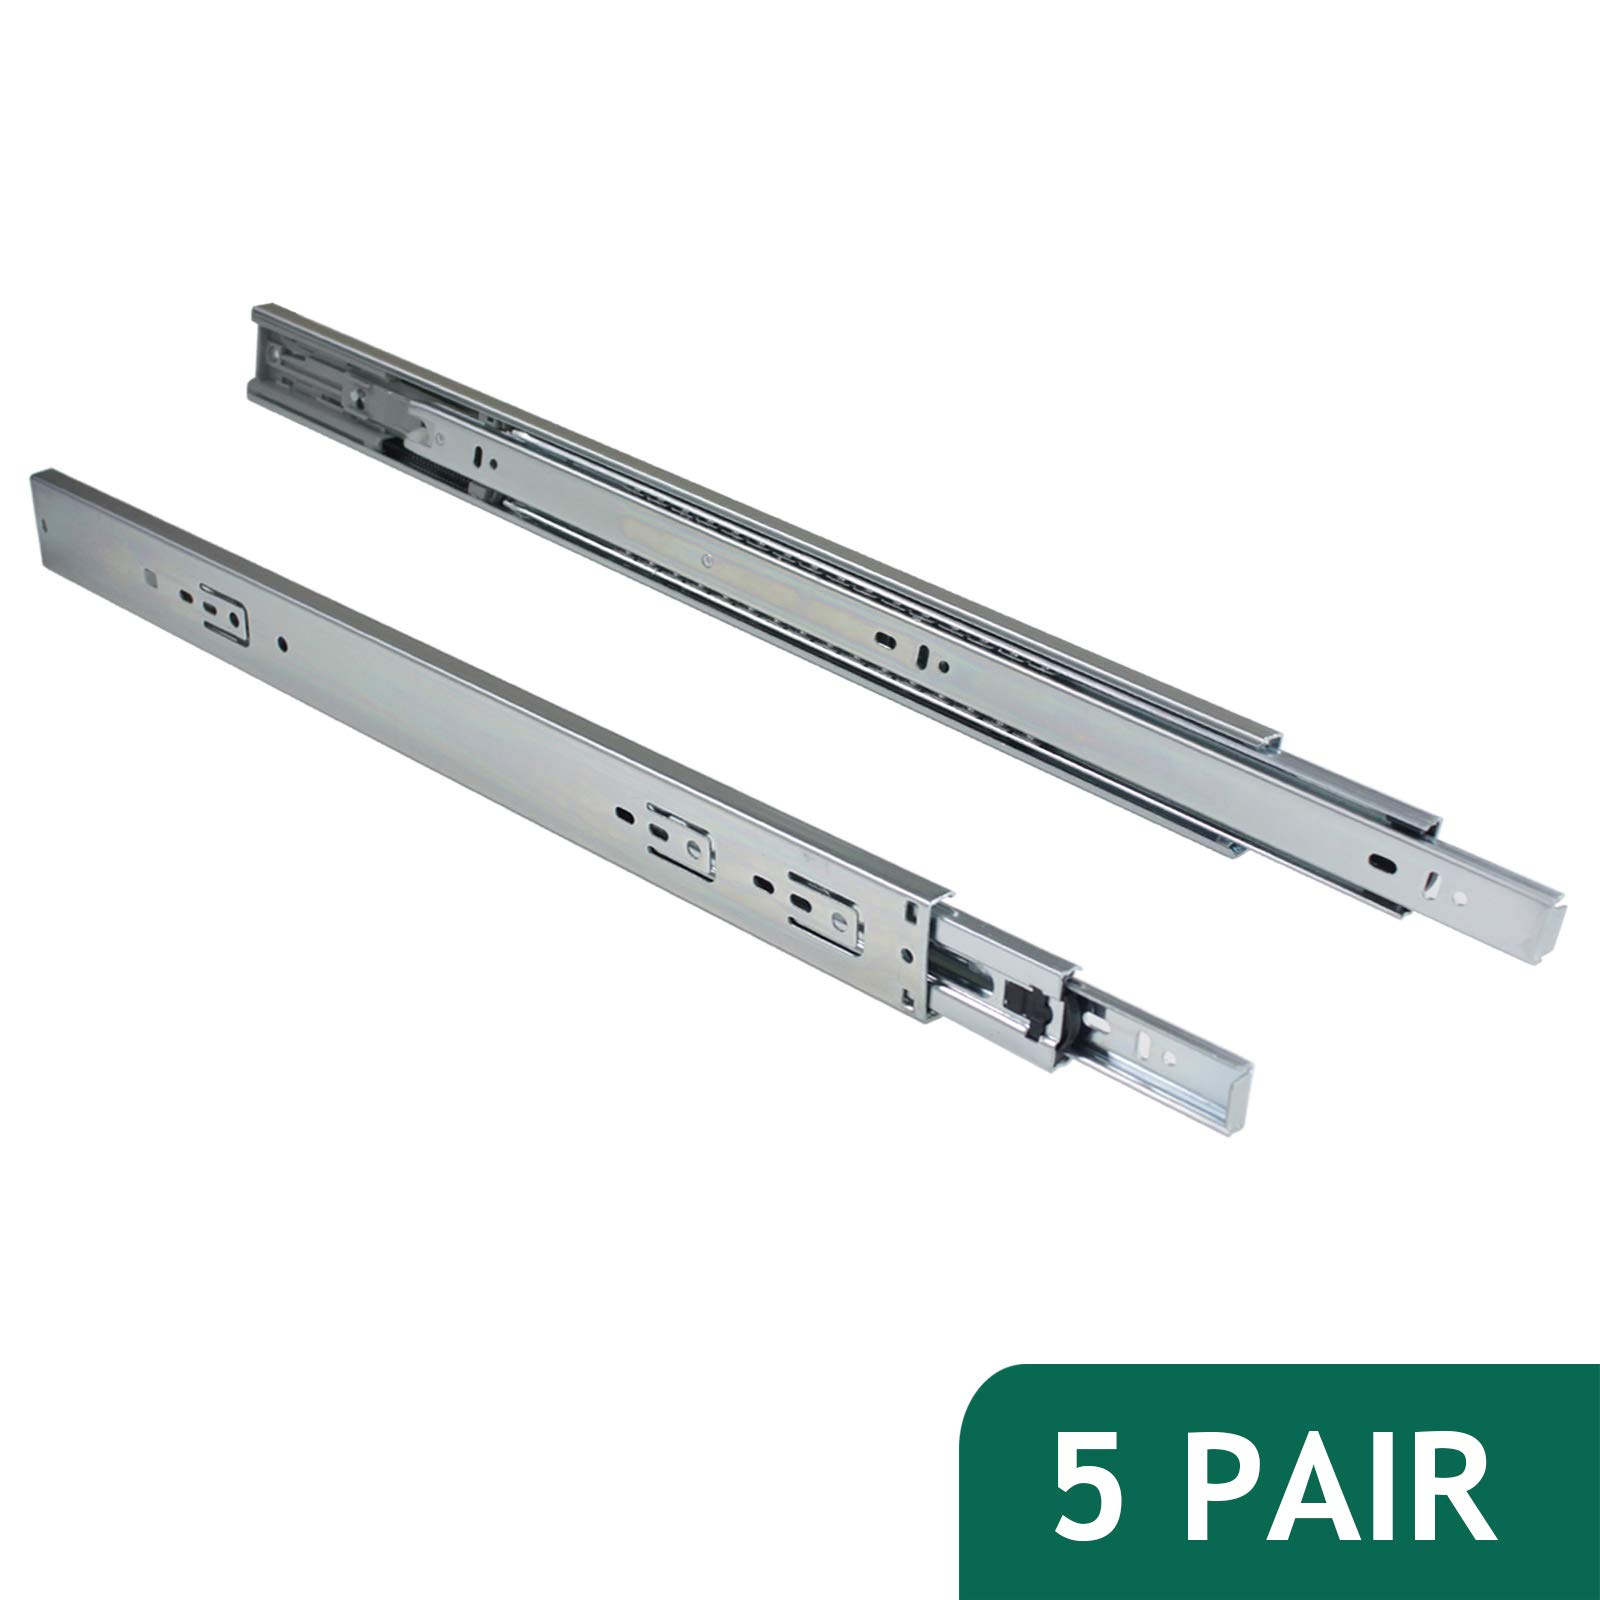 Probrico 100 LB Capacity Full Extension Soft/Self Close Ball Bearing Side Mount Drawer Slides 22 Inch 5 Pair